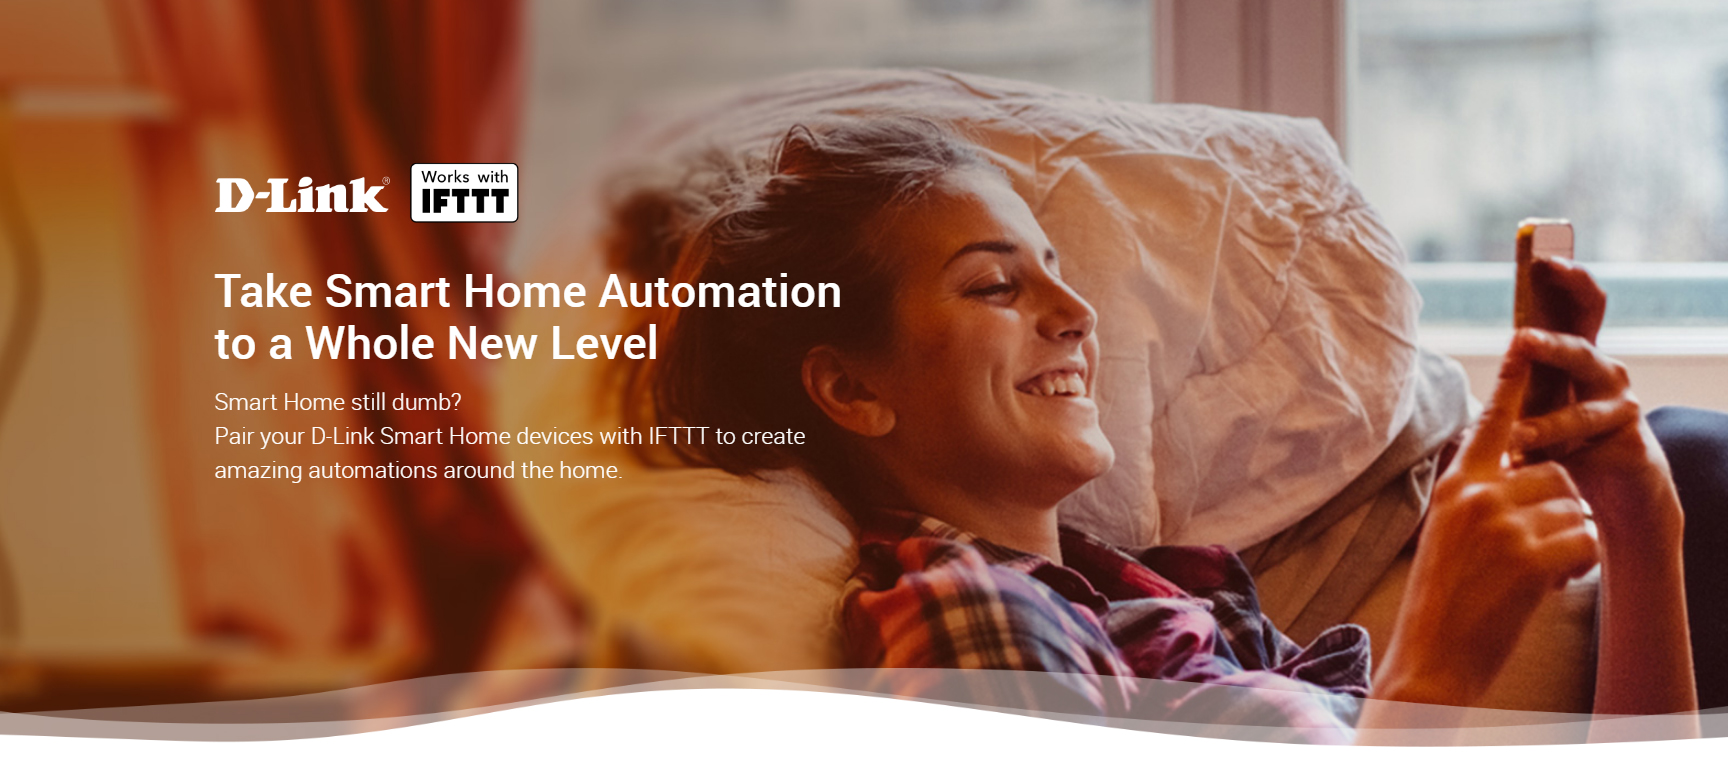 Take Smart Home Automation to a whole New Level